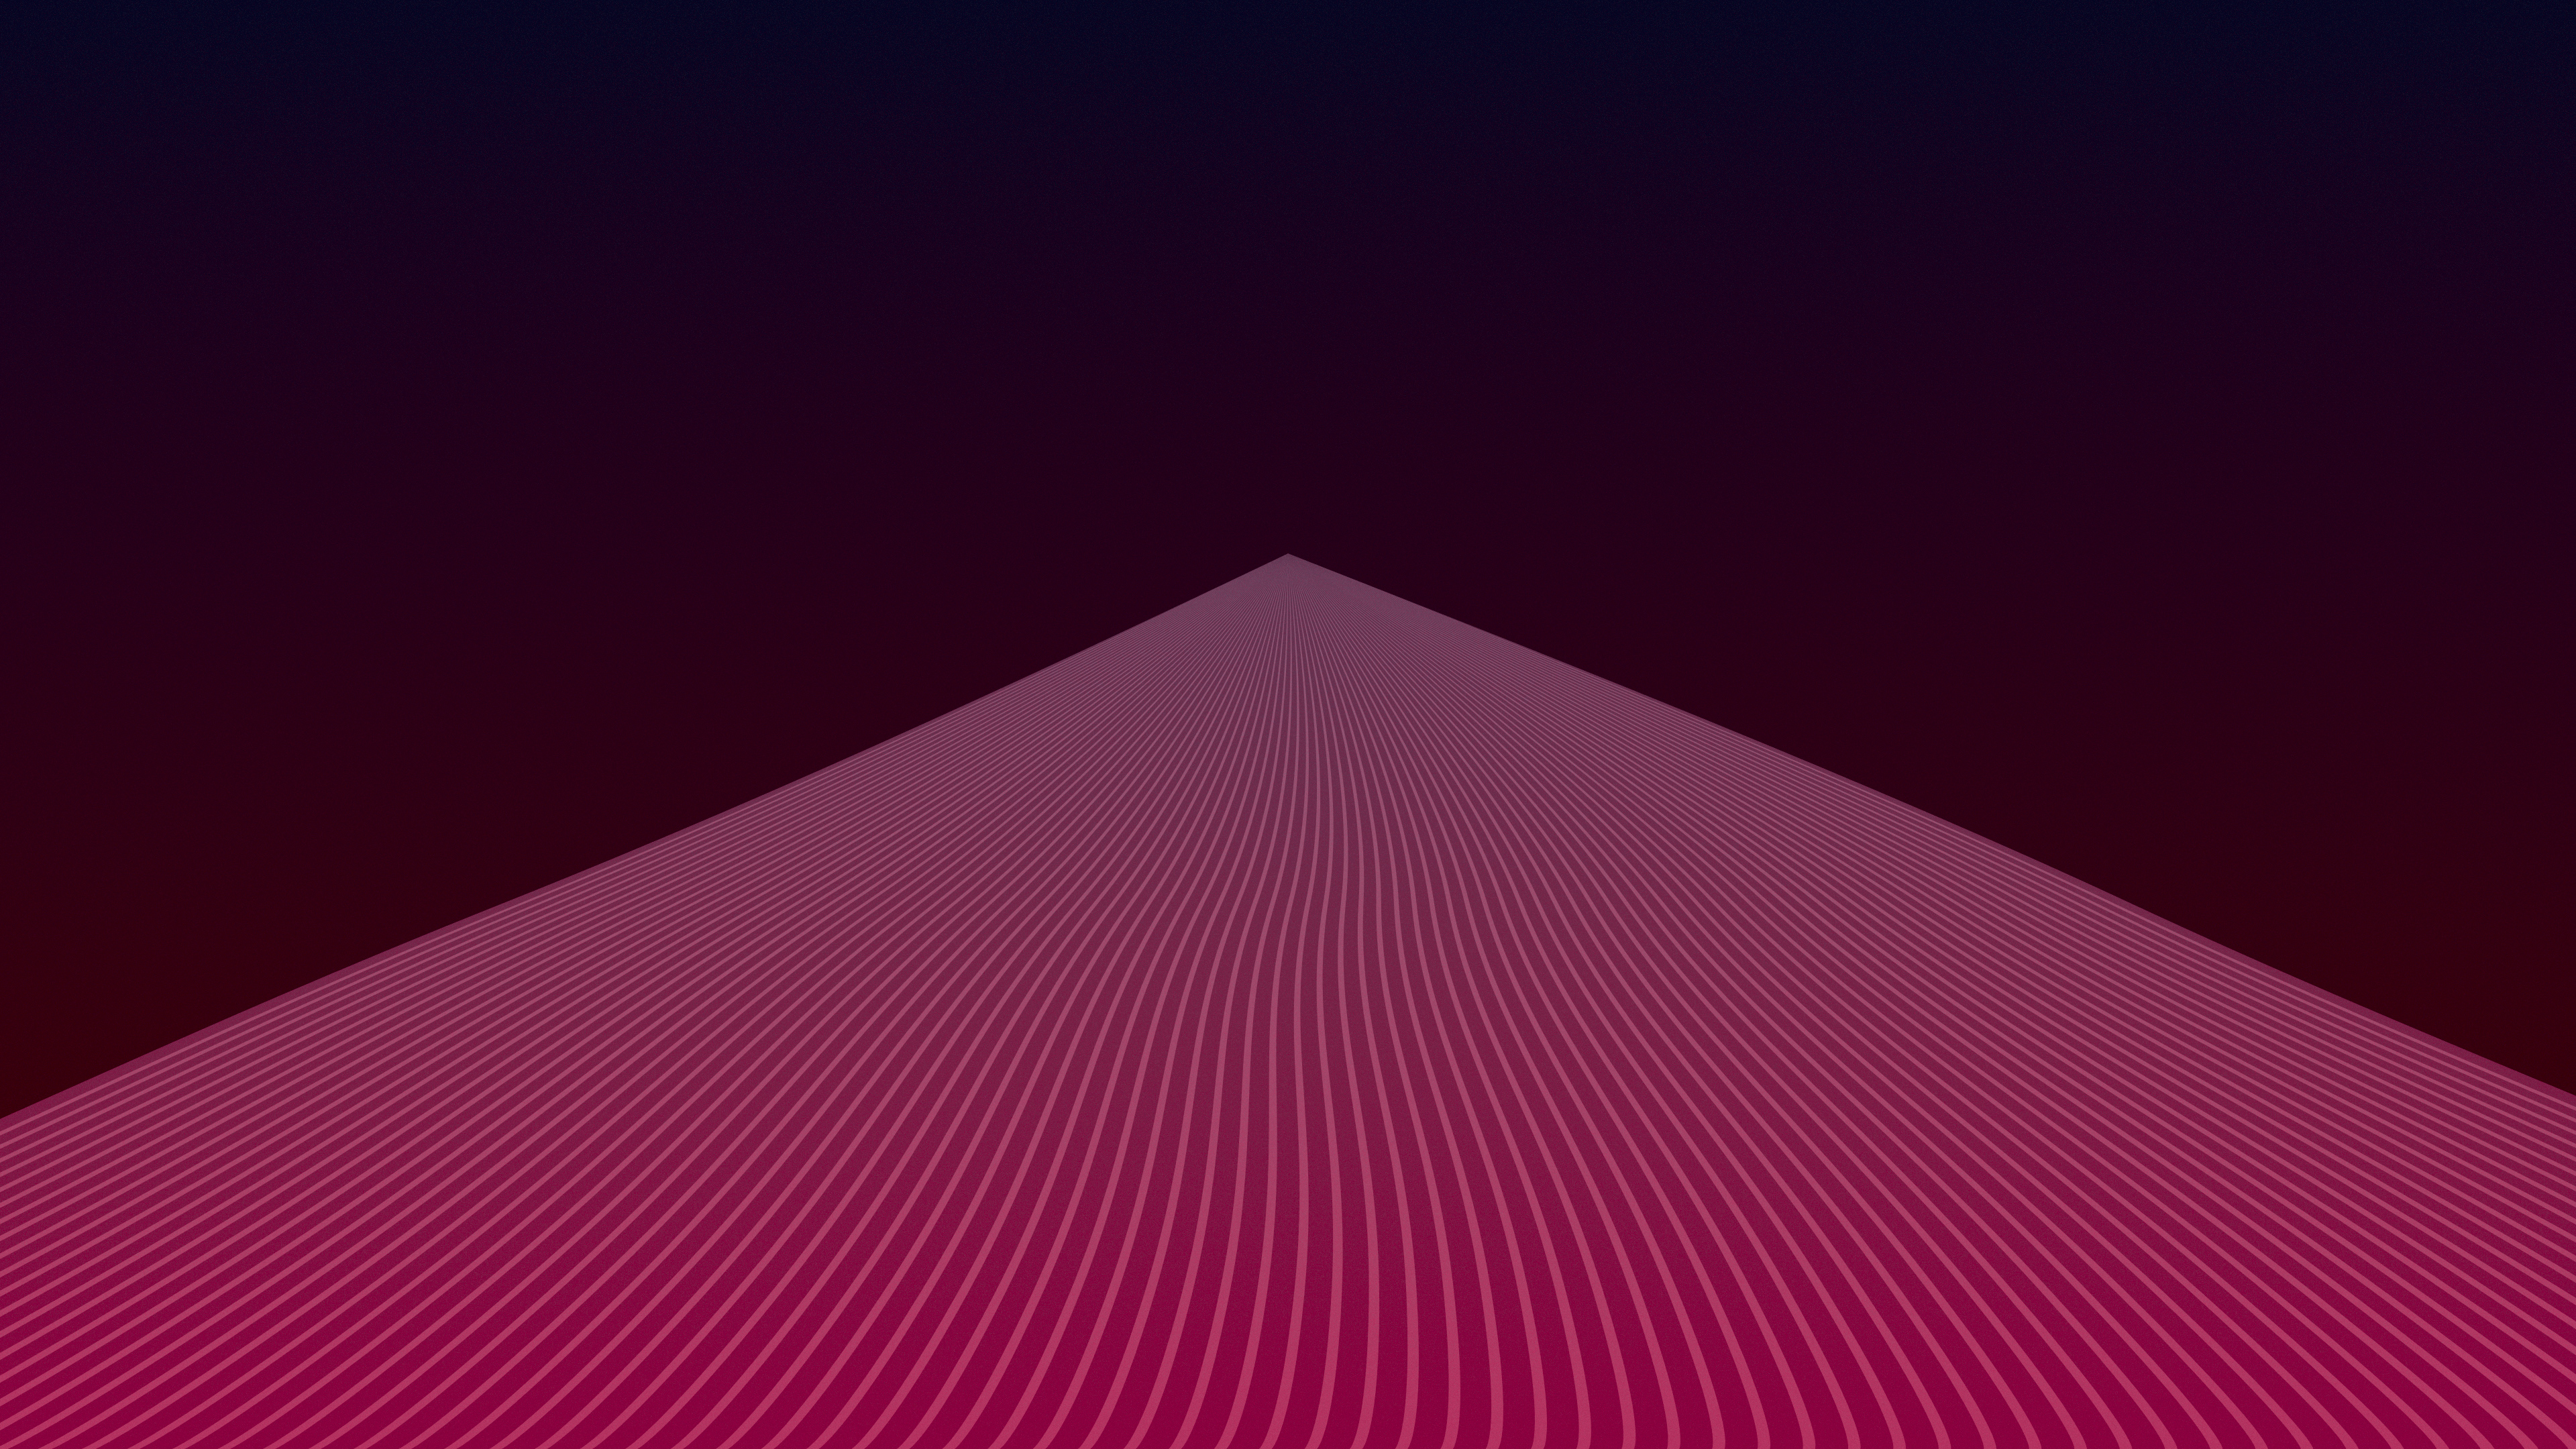 Triangle Inkscape Minimal Gradient 4k Hd Abstract 4k